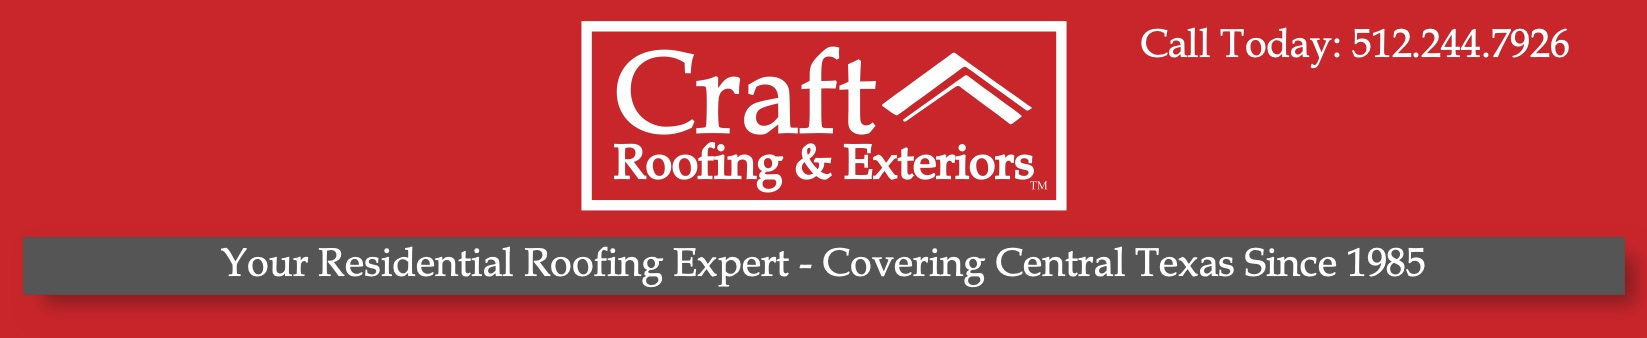 Craft Roofing